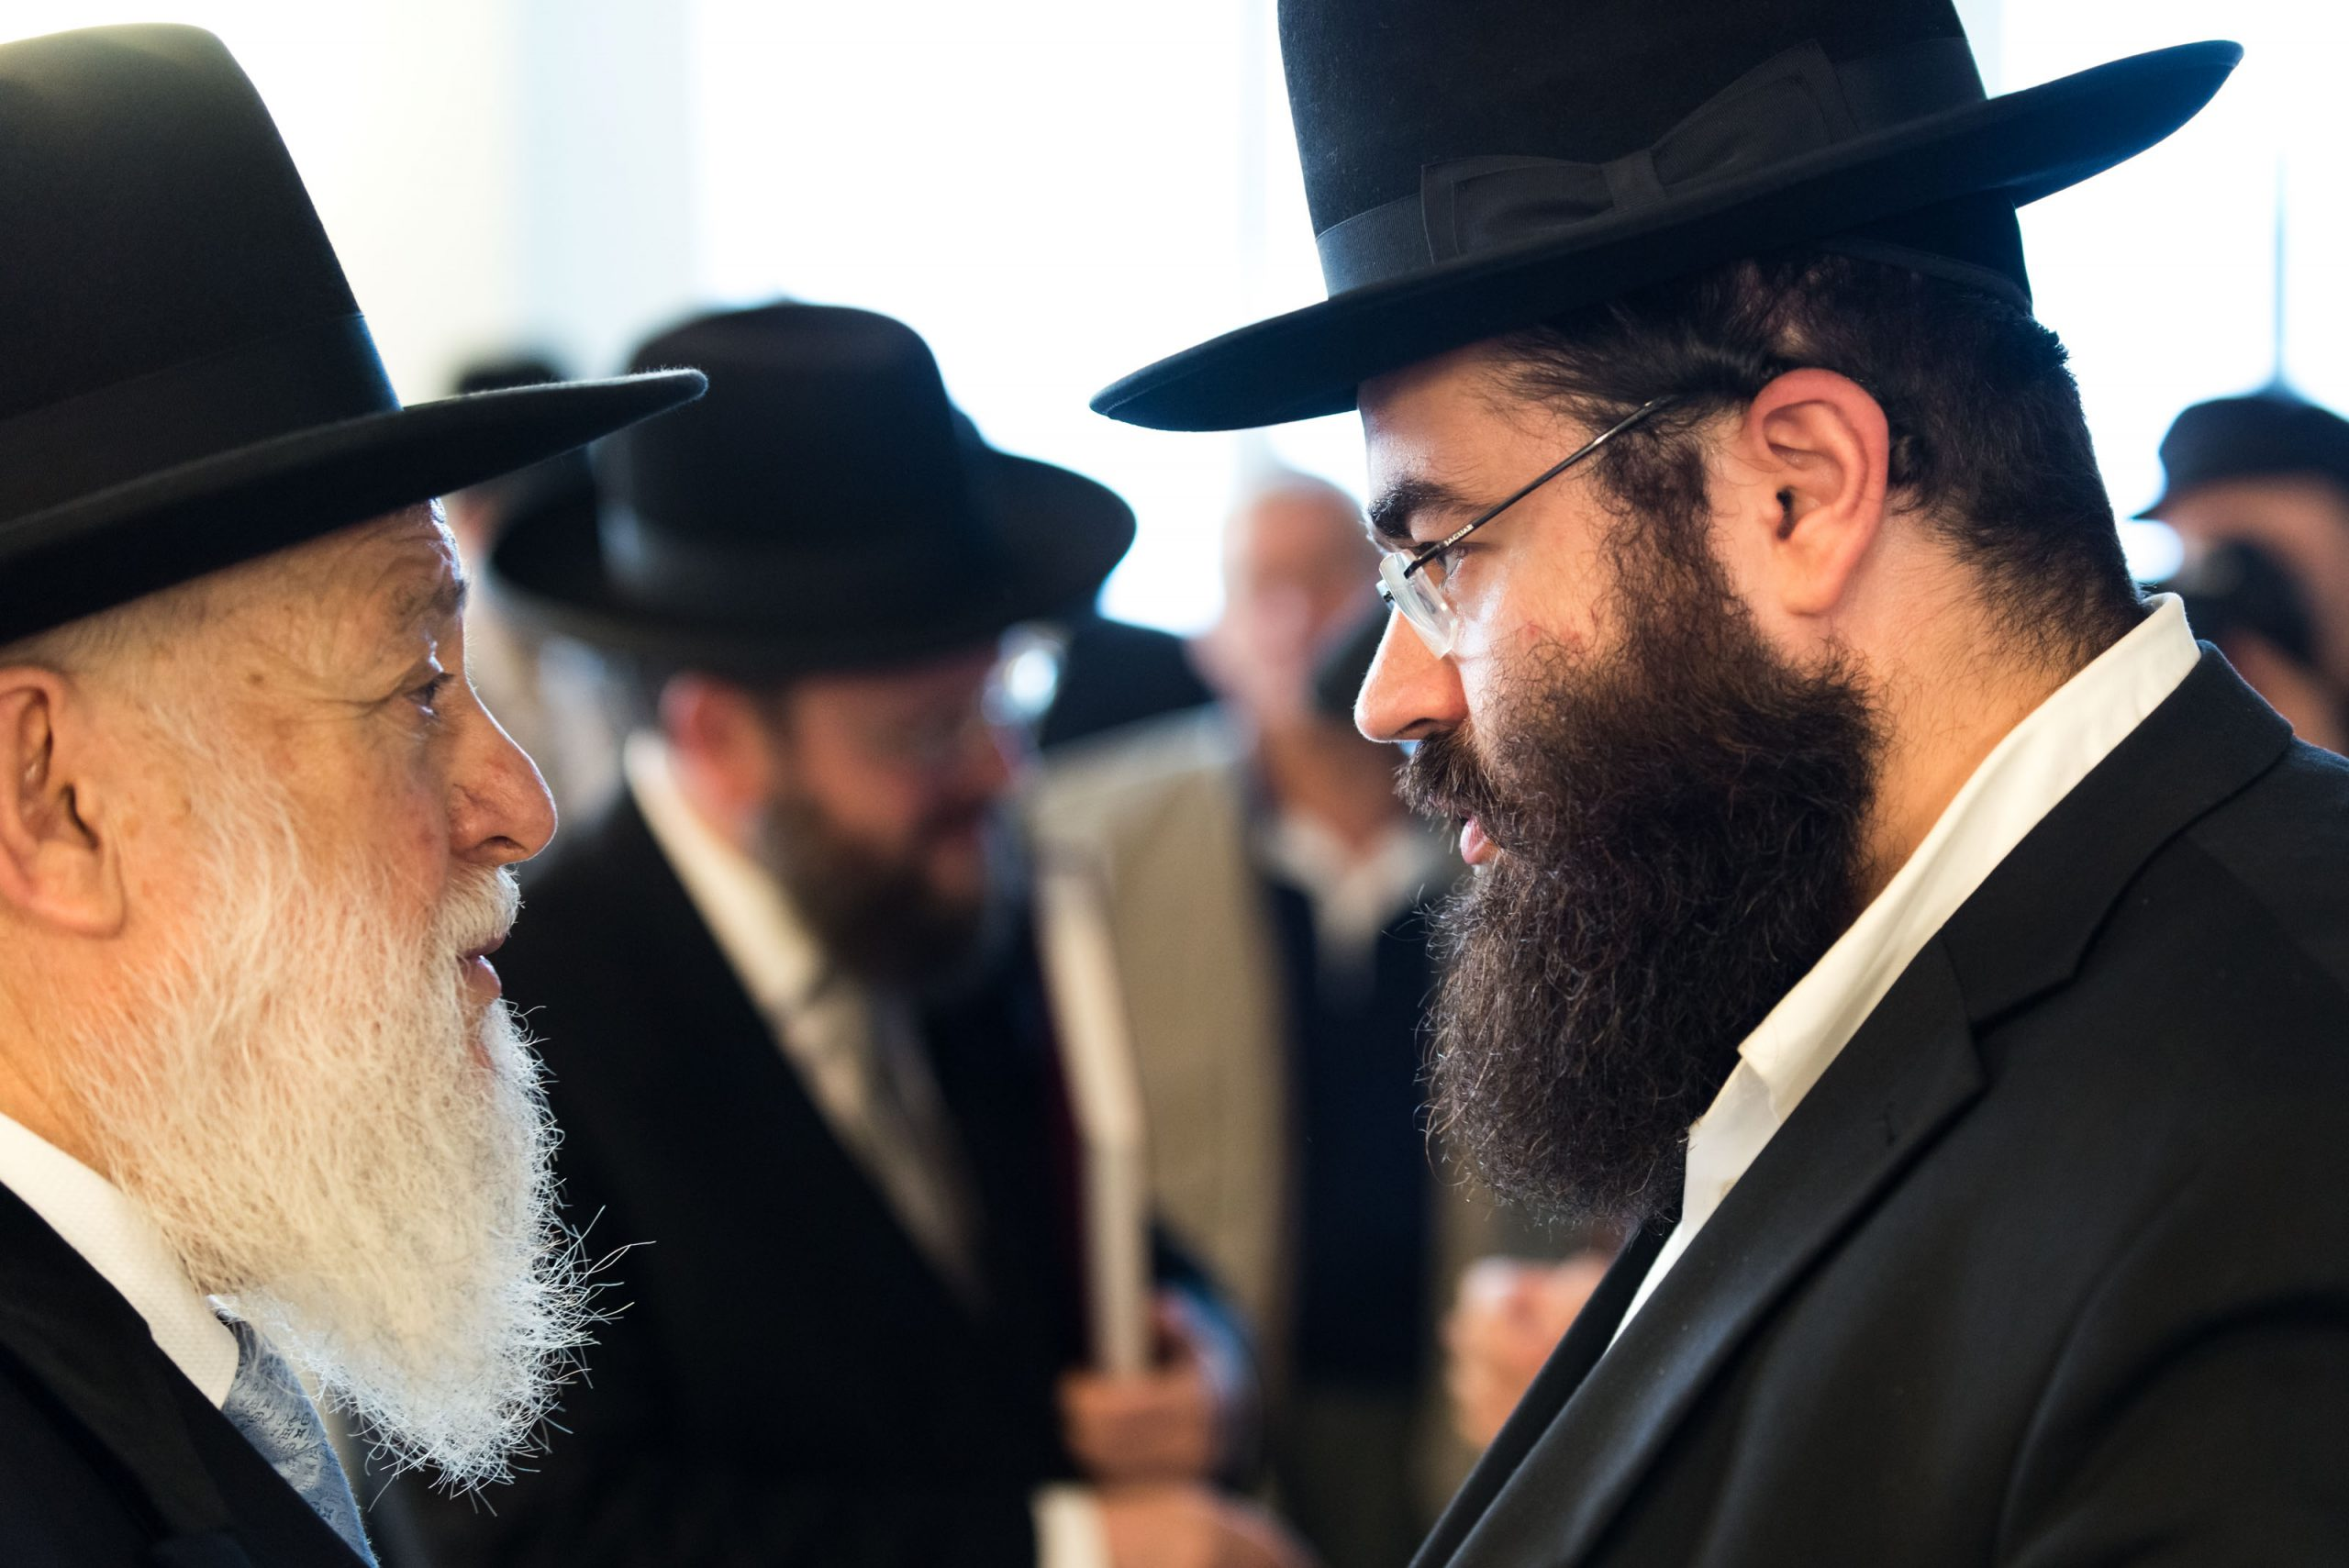 Rabbi Reuven